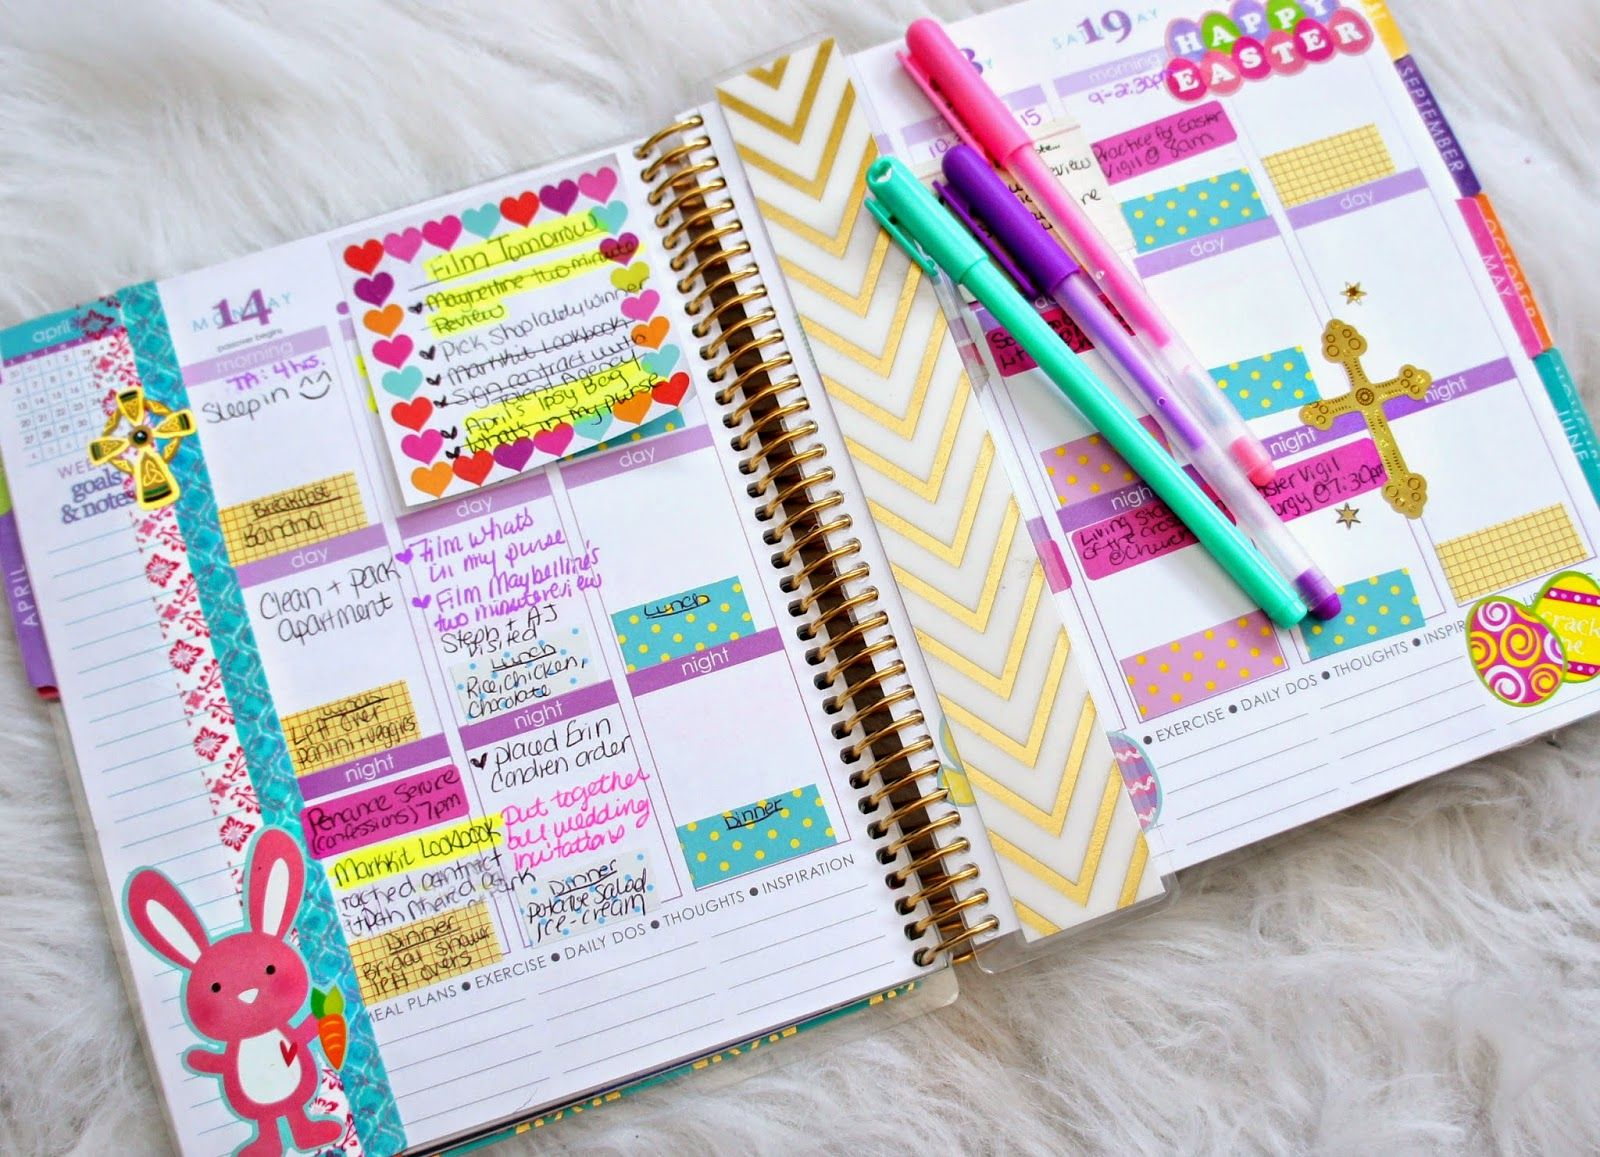 I Love Decorating My Planner Let Me Know If You Would